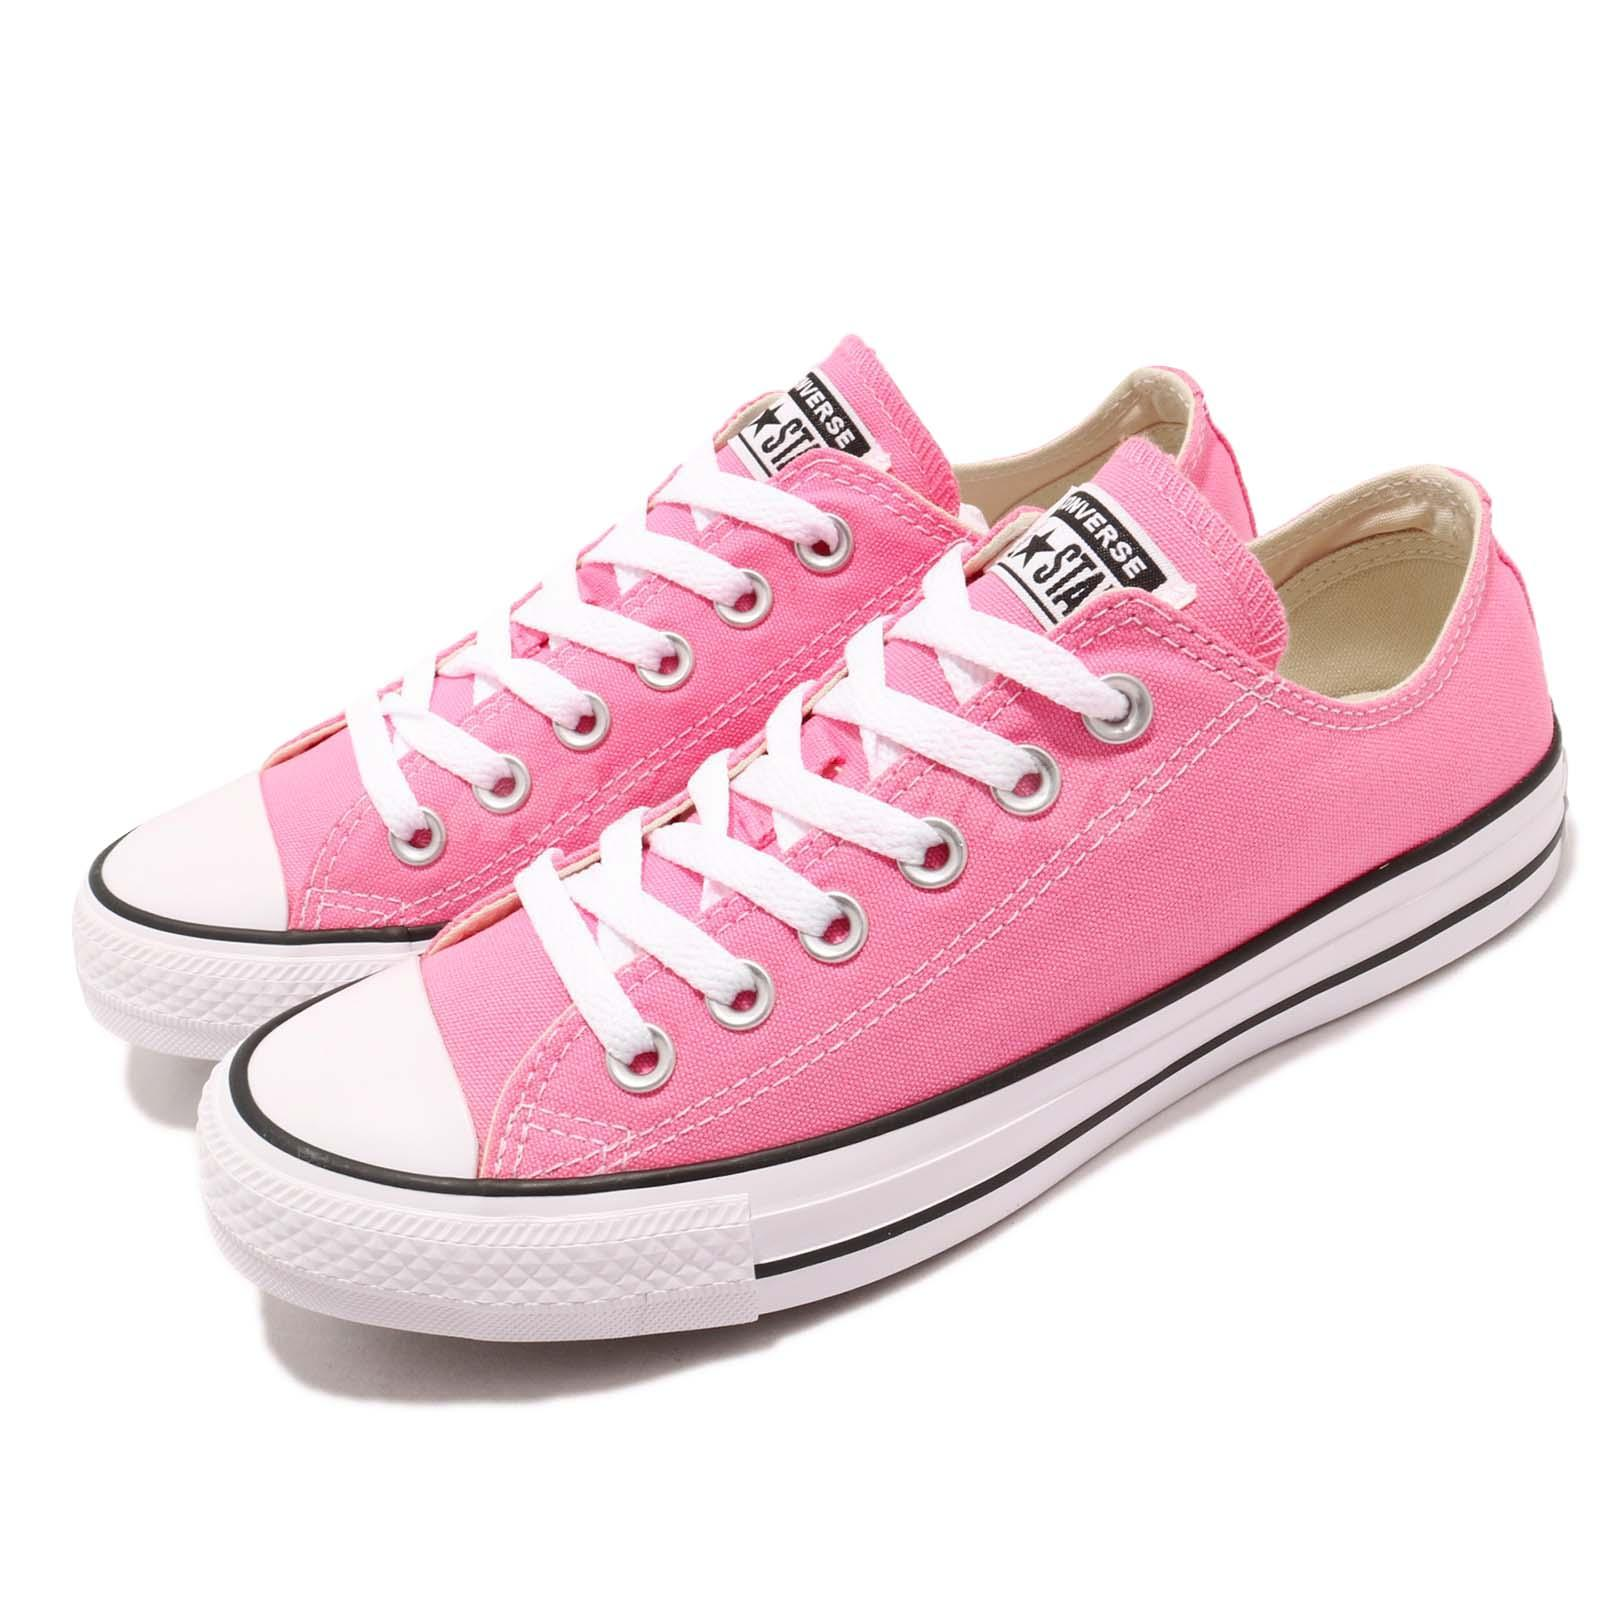 Converse Chuck Taylor All Star OX Low Pink White Men Women Casual ... 0fb0f99d5